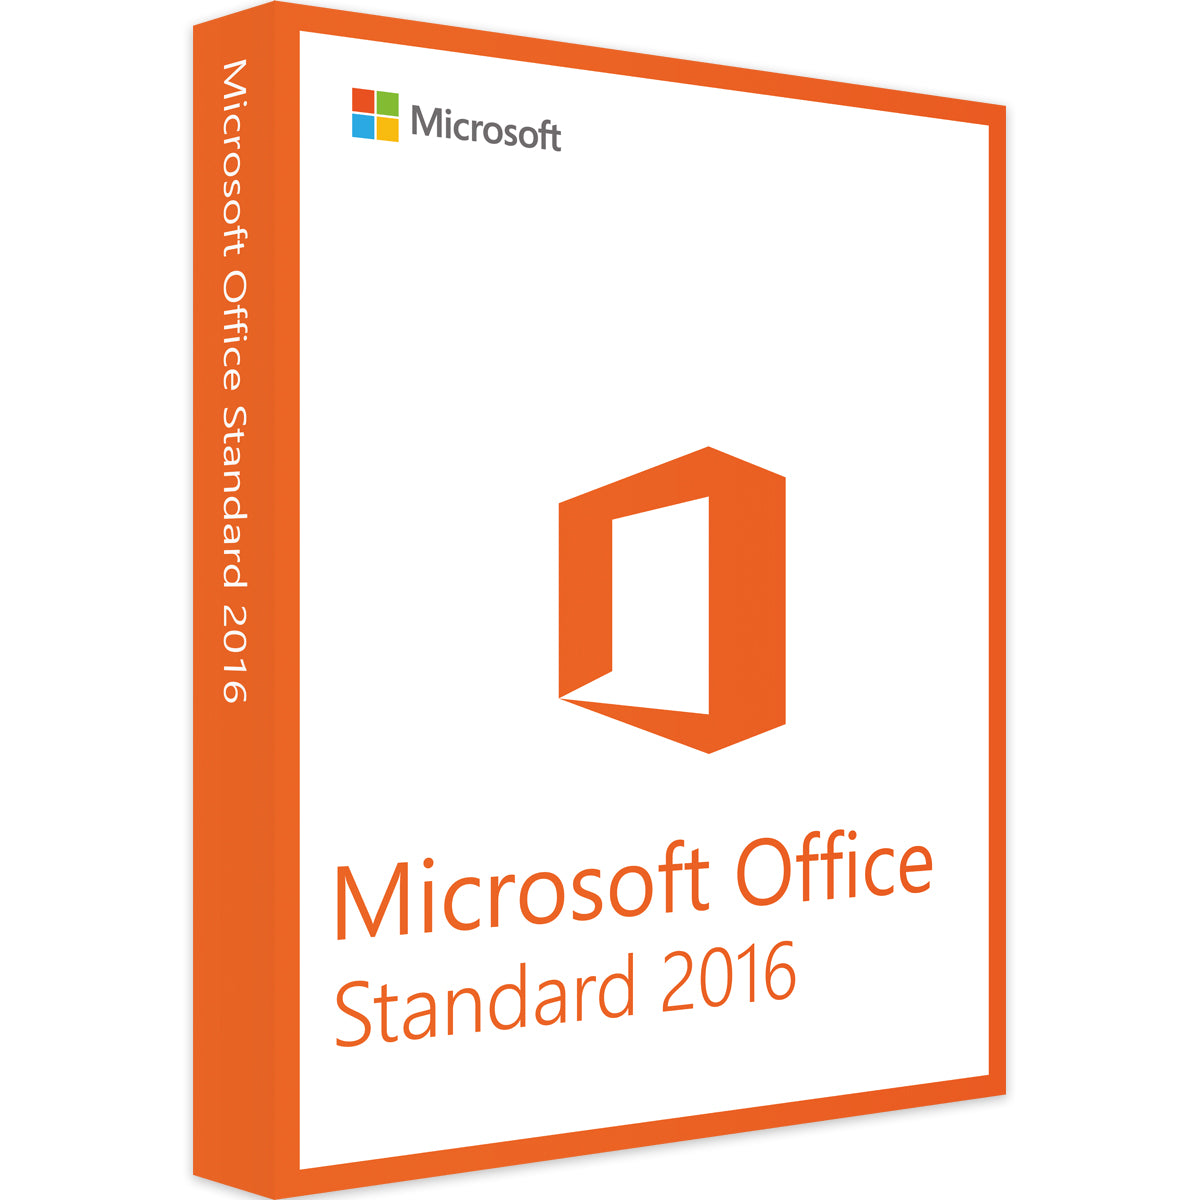 Microsoft Office Standard 2016 - Software-Markt data-zoom=